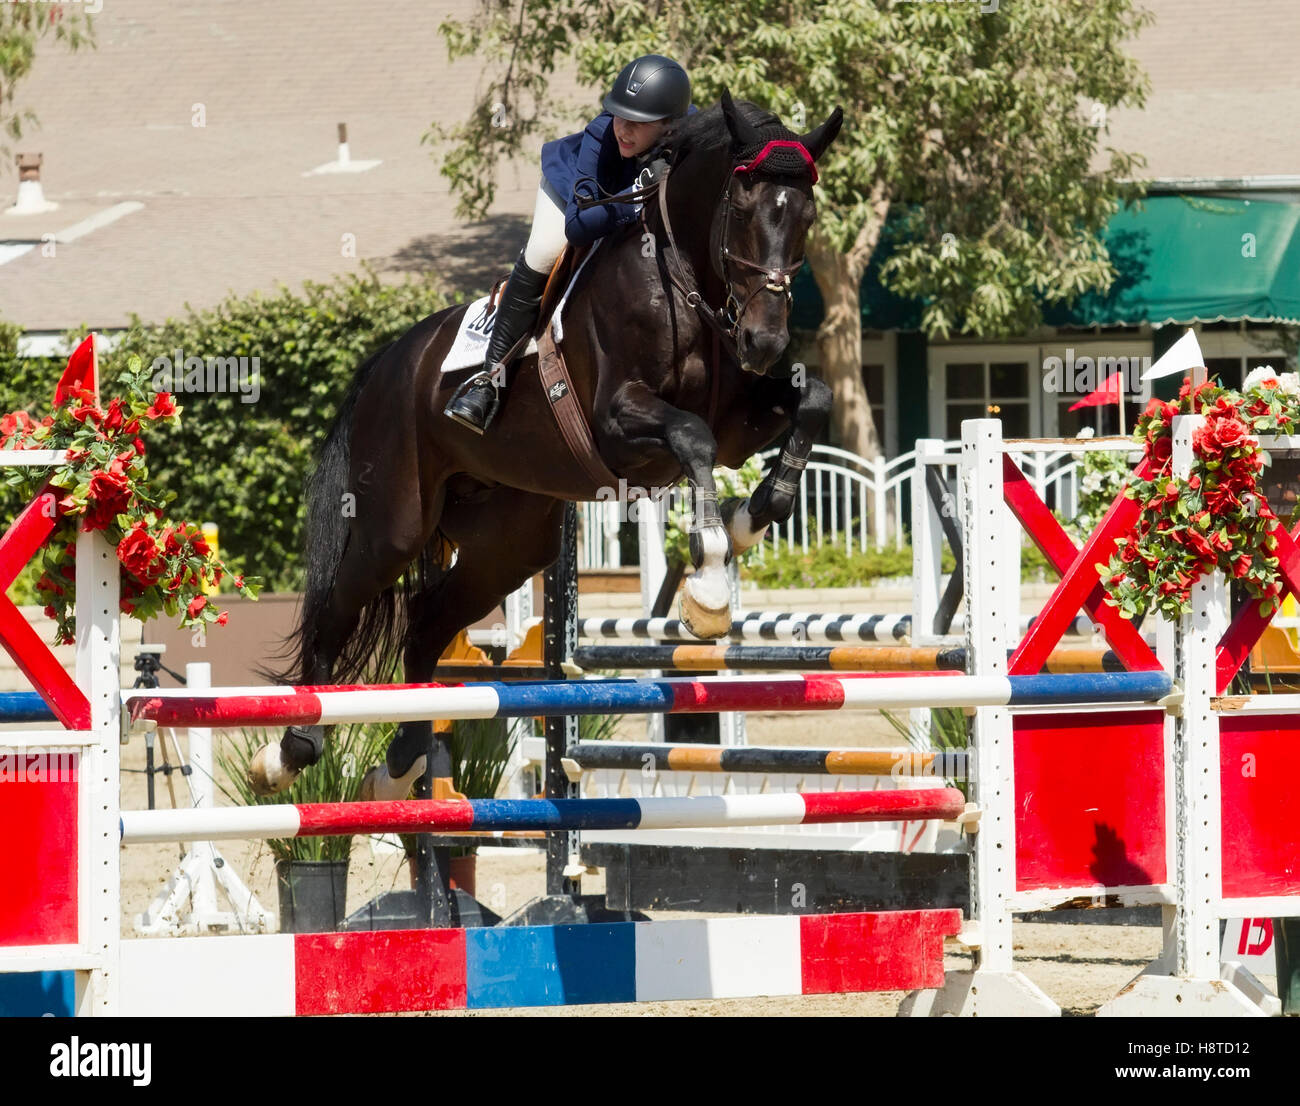 Female Rider On Black Horse Jumping Over Hurdles Stock Photo Alamy